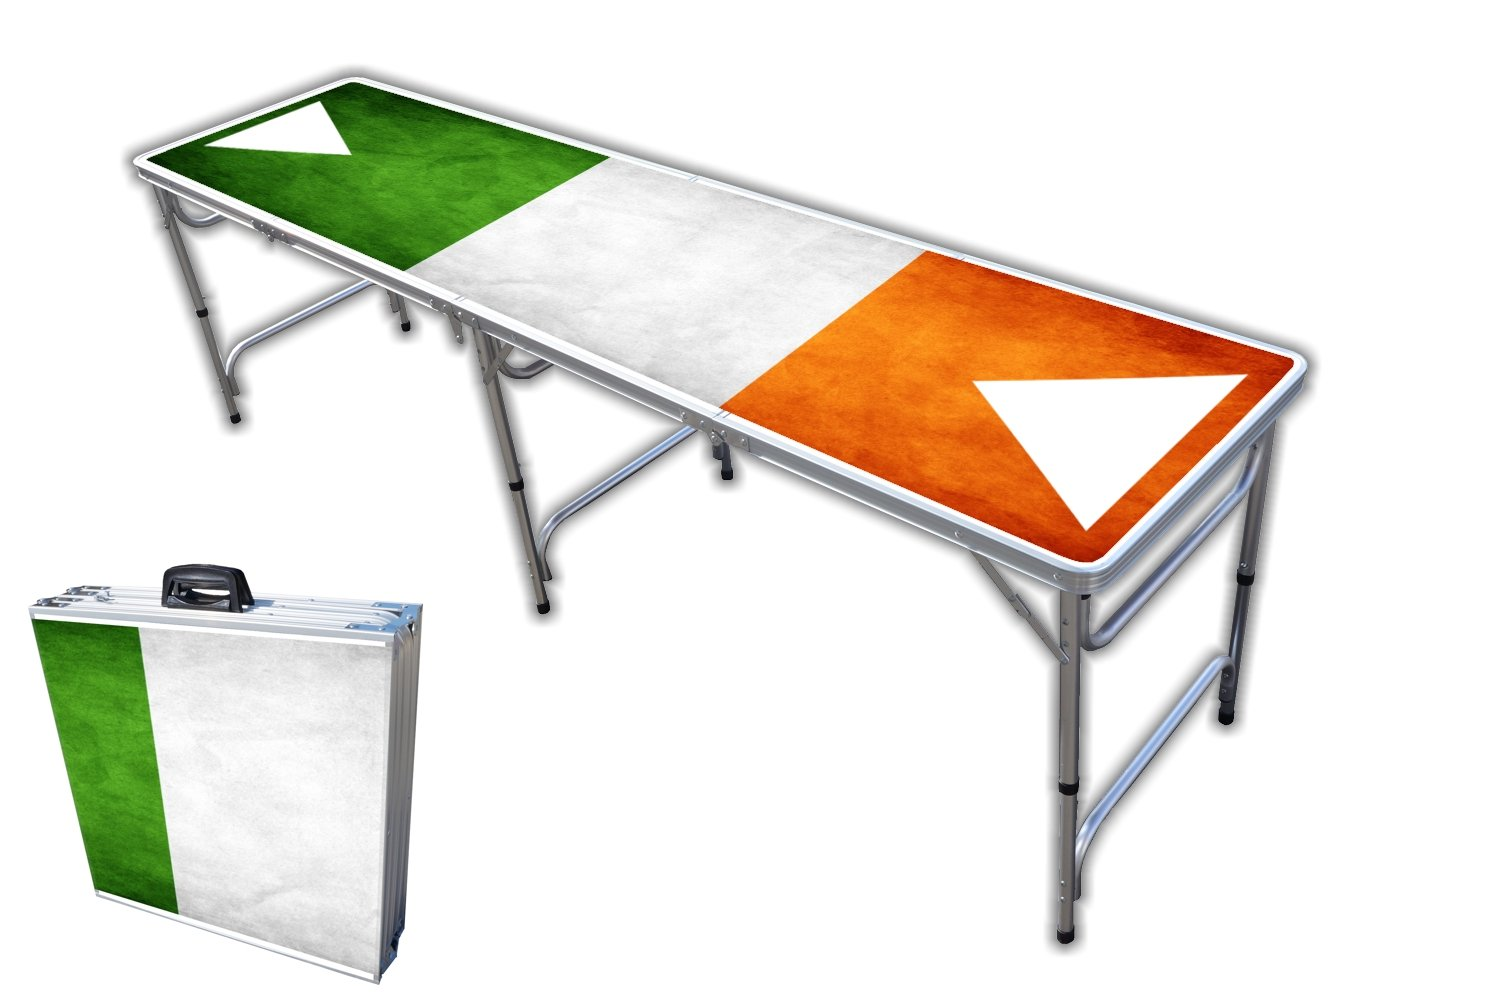 8-Foot Professional Beer Pong Table - Shenanigans Graphic